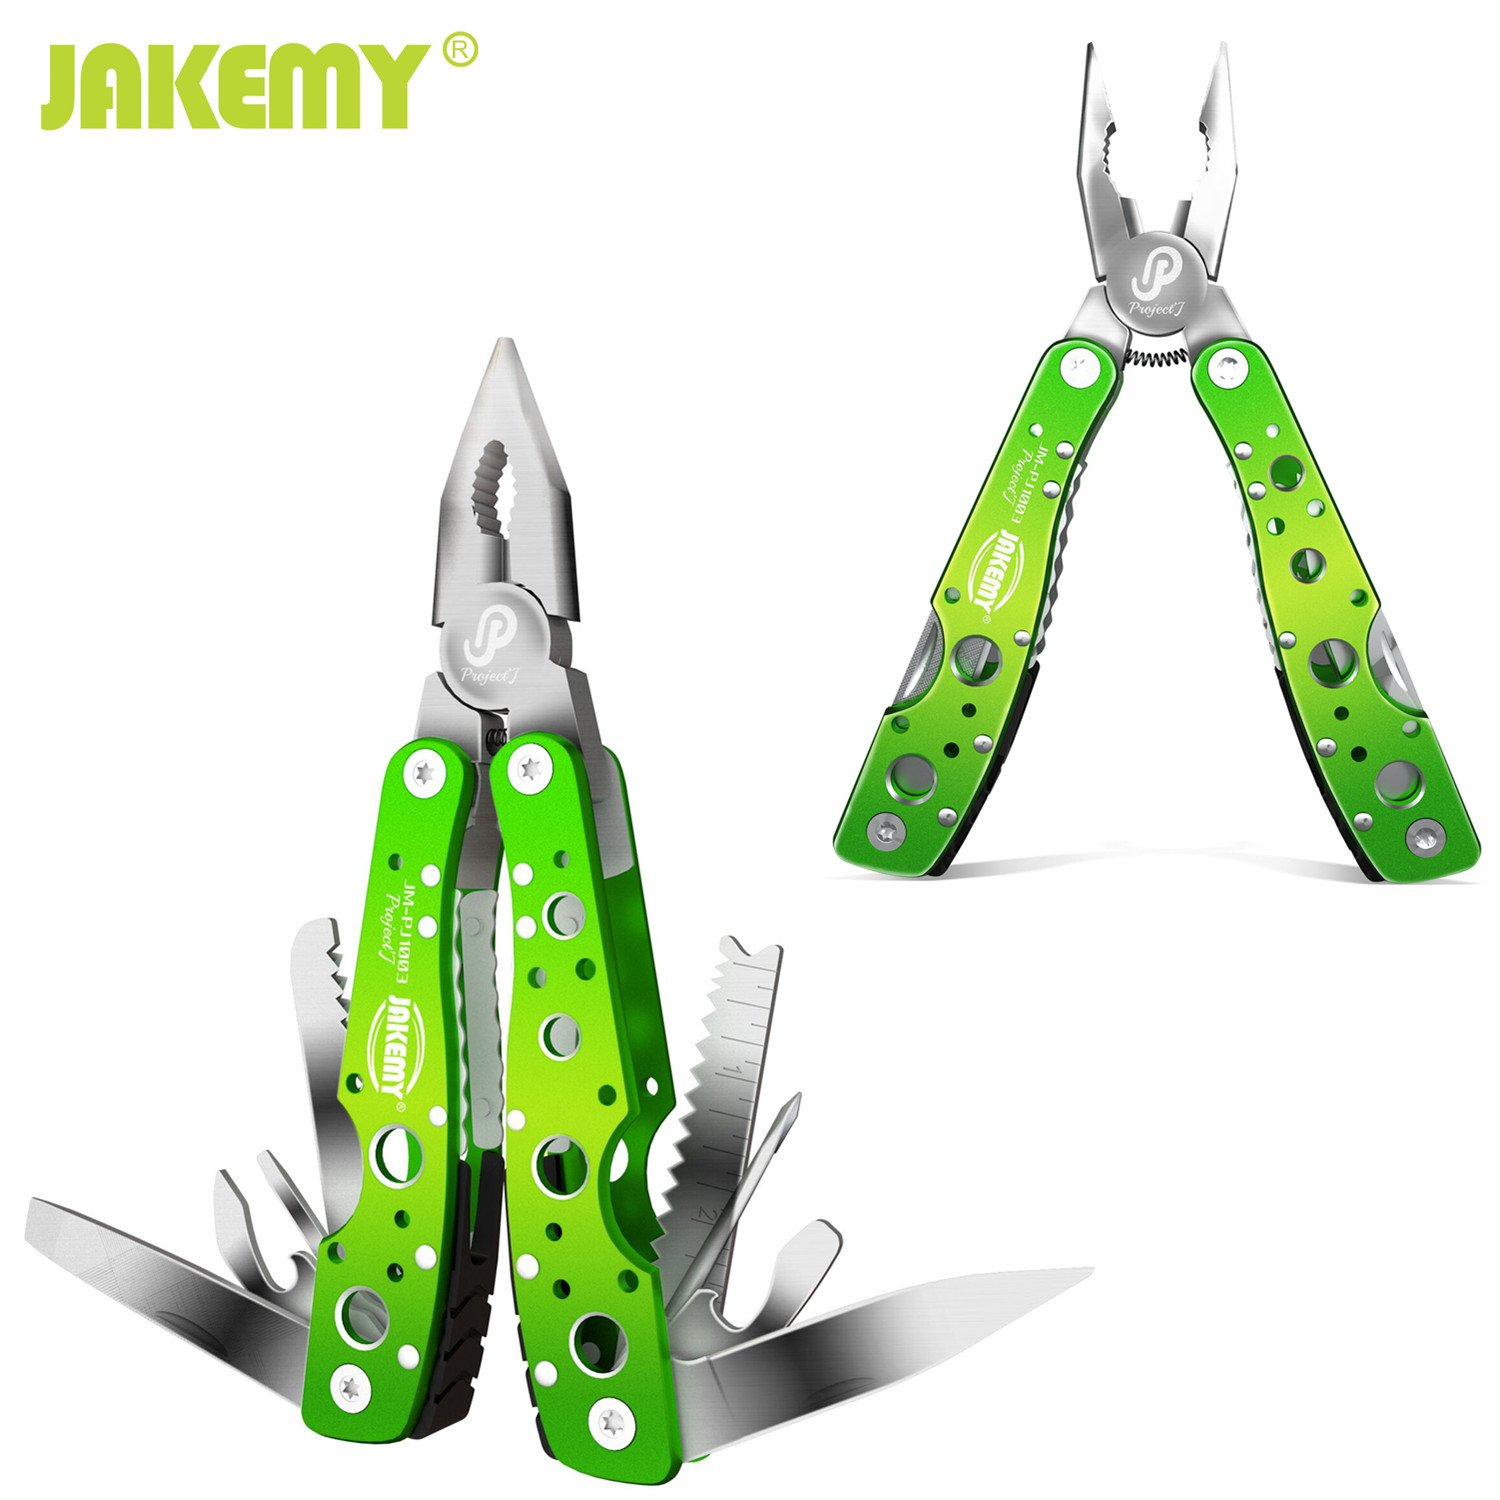 Save 50% on Jakemy Multitool K...